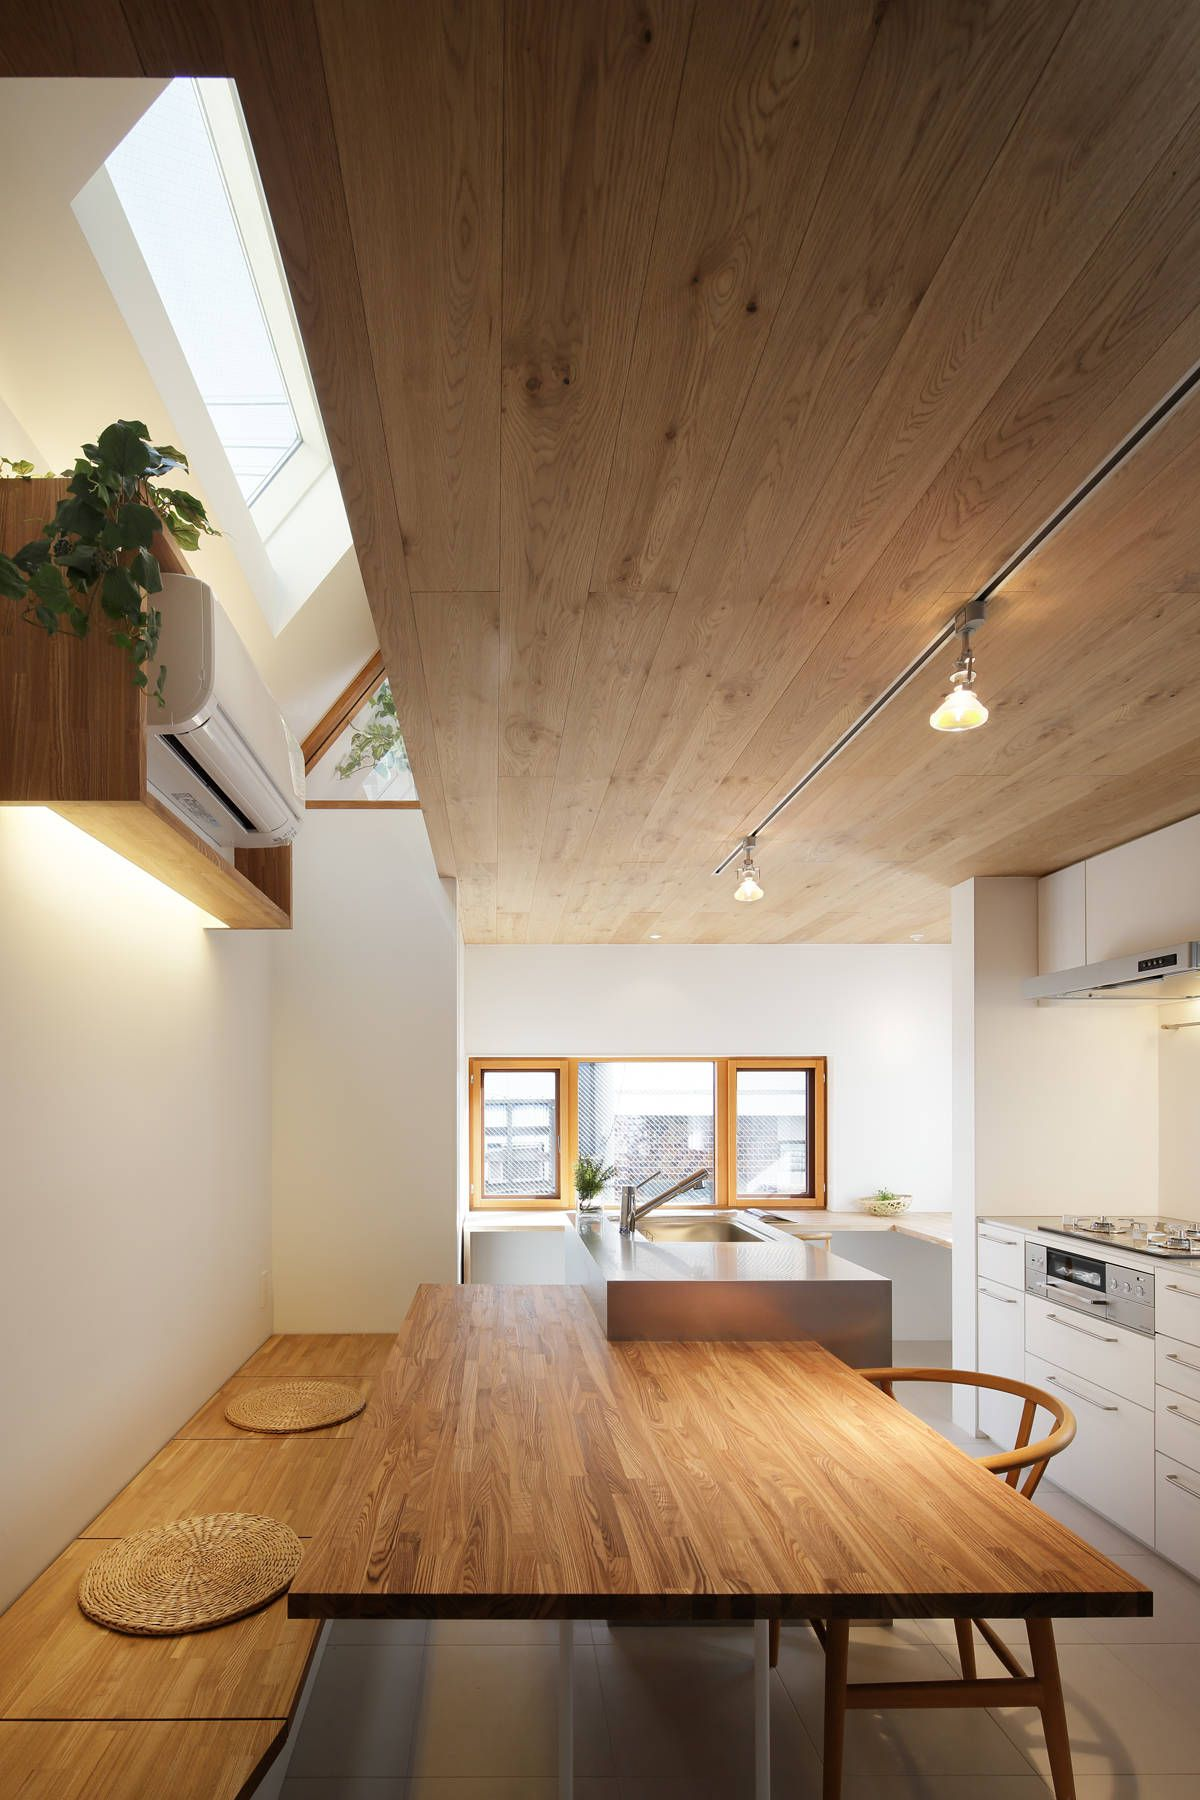 Platinum House | House, Spaces and Lights on houses in tokyo japan, narrow house interior design, small apartment building in japan, micro houses in japan, tall skinny building in japan,